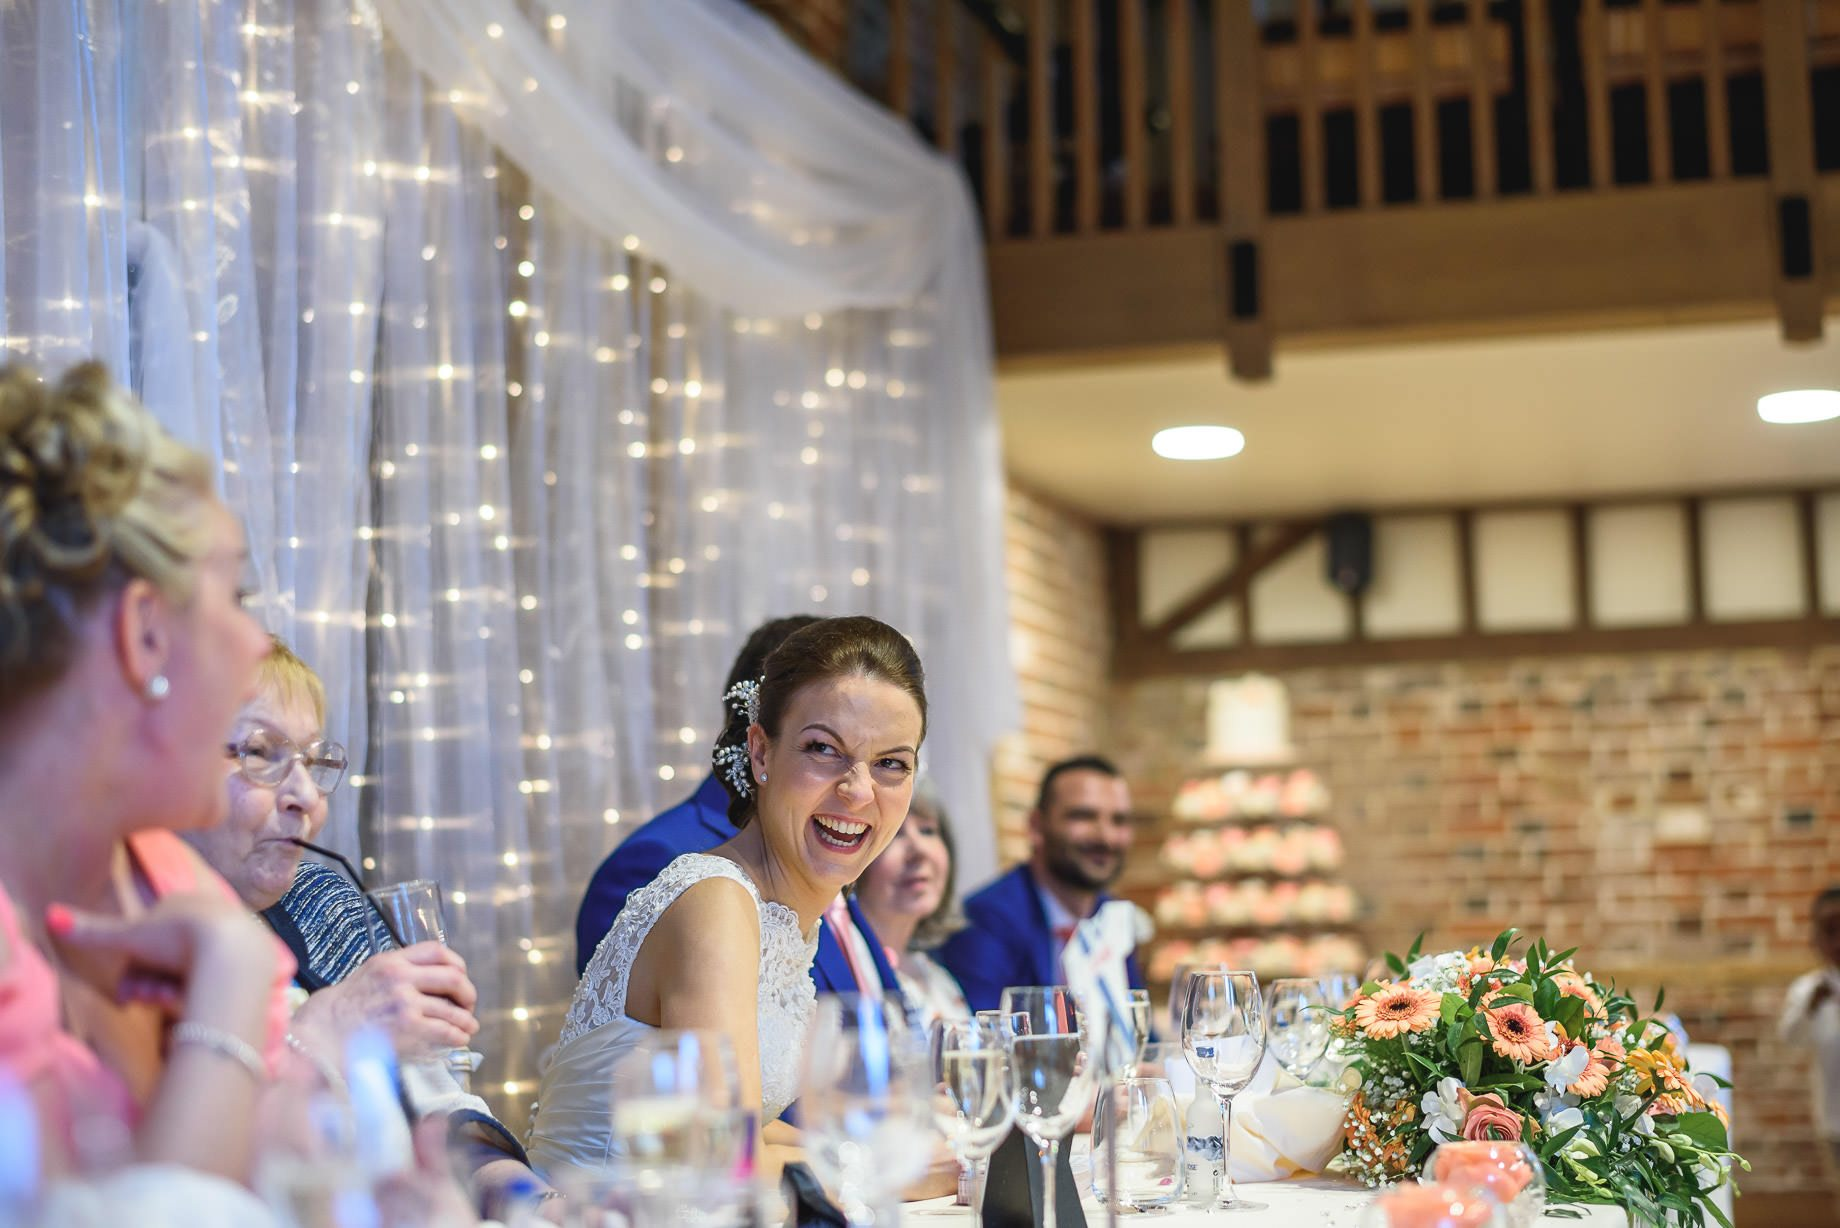 Best wedding photography by Guy Collier - Sheri and Chris (101 of 121)